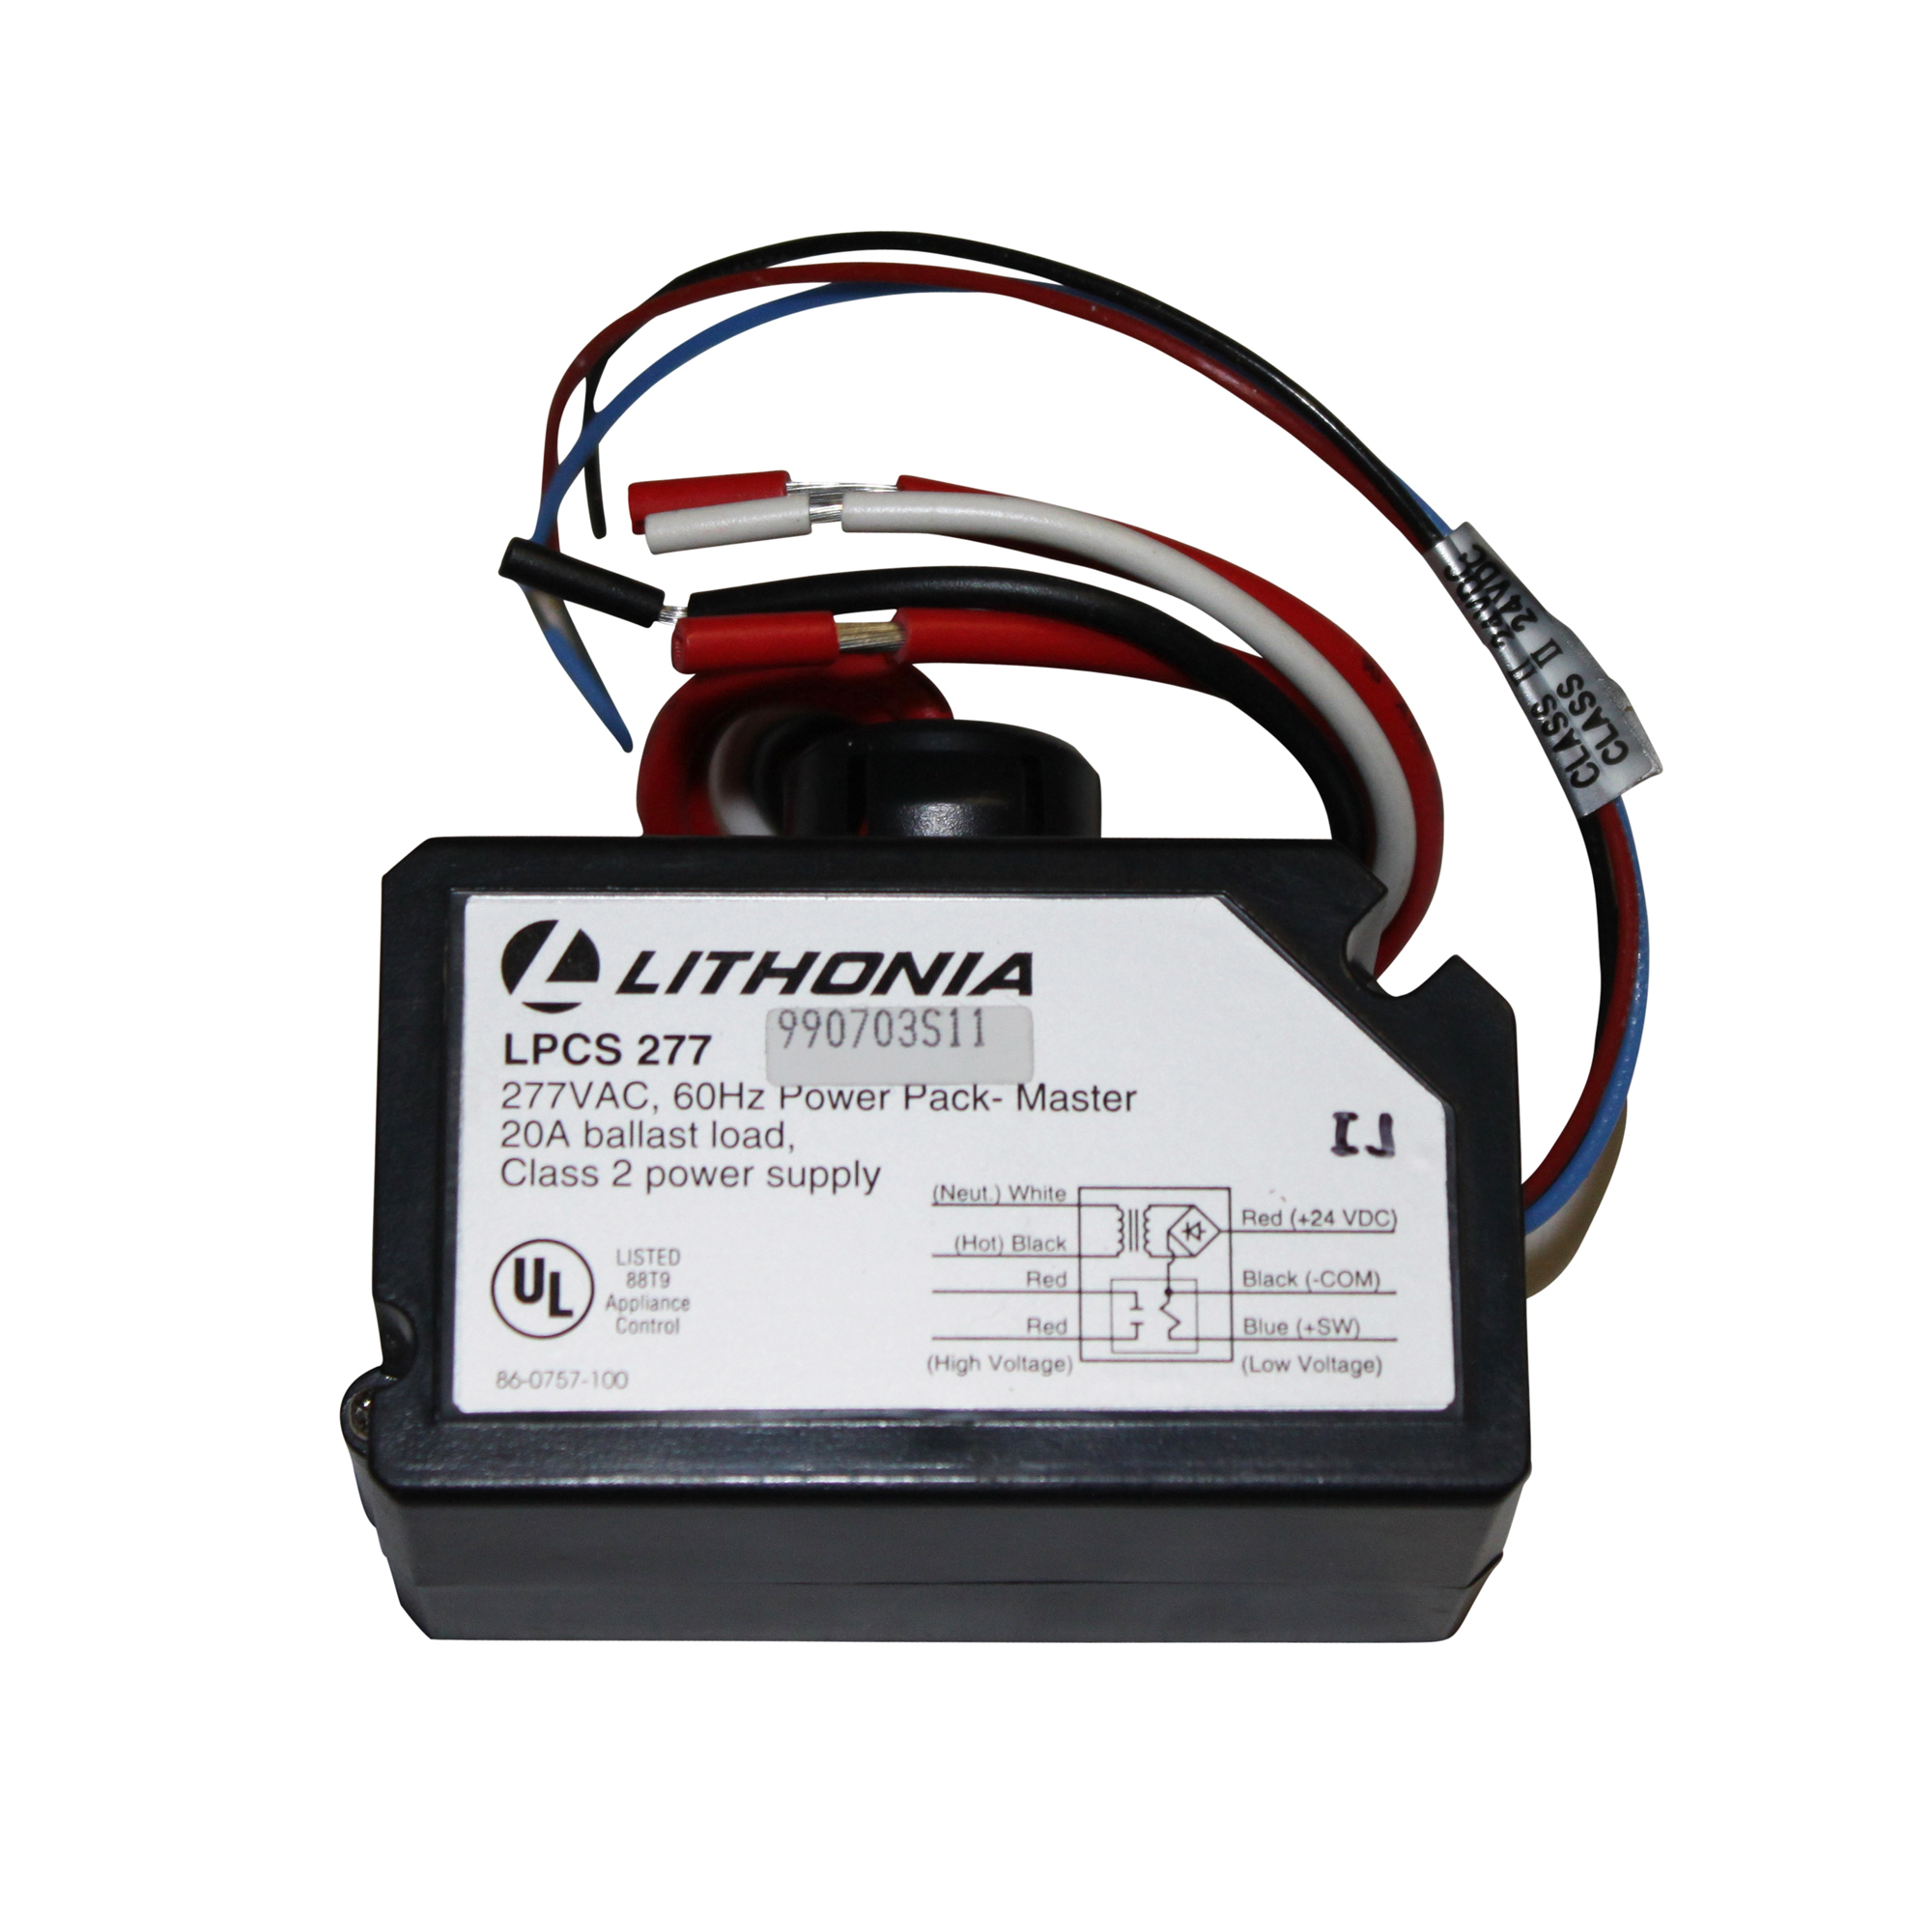 Lithonia Lighting LPCS 277 Occupancy Sensor Power Pack Master Litronic 277V Power Control Station 60